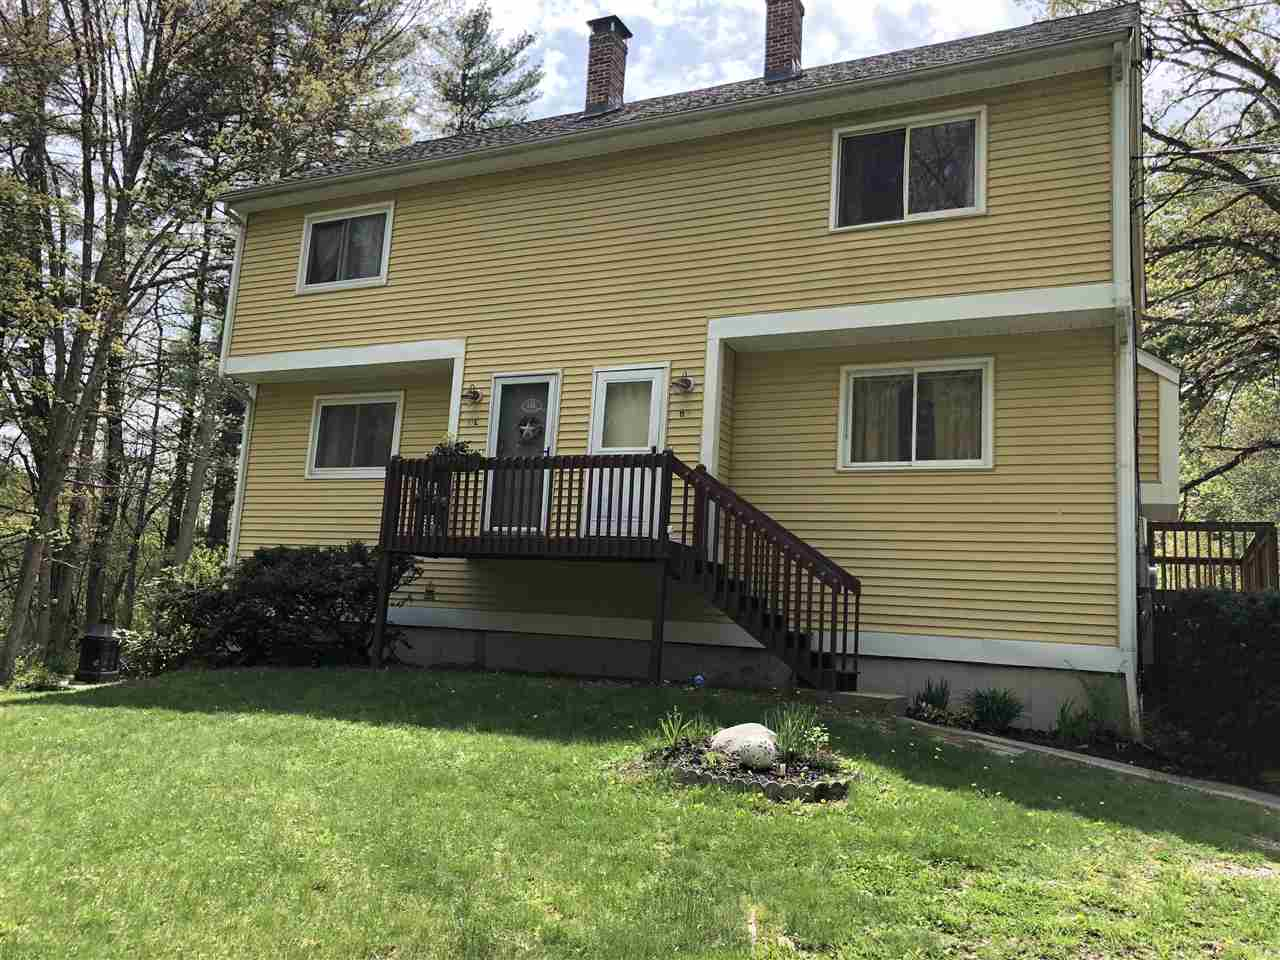 Derry NH Condos for Sale | Condominiums for sale in Derry NH from ...